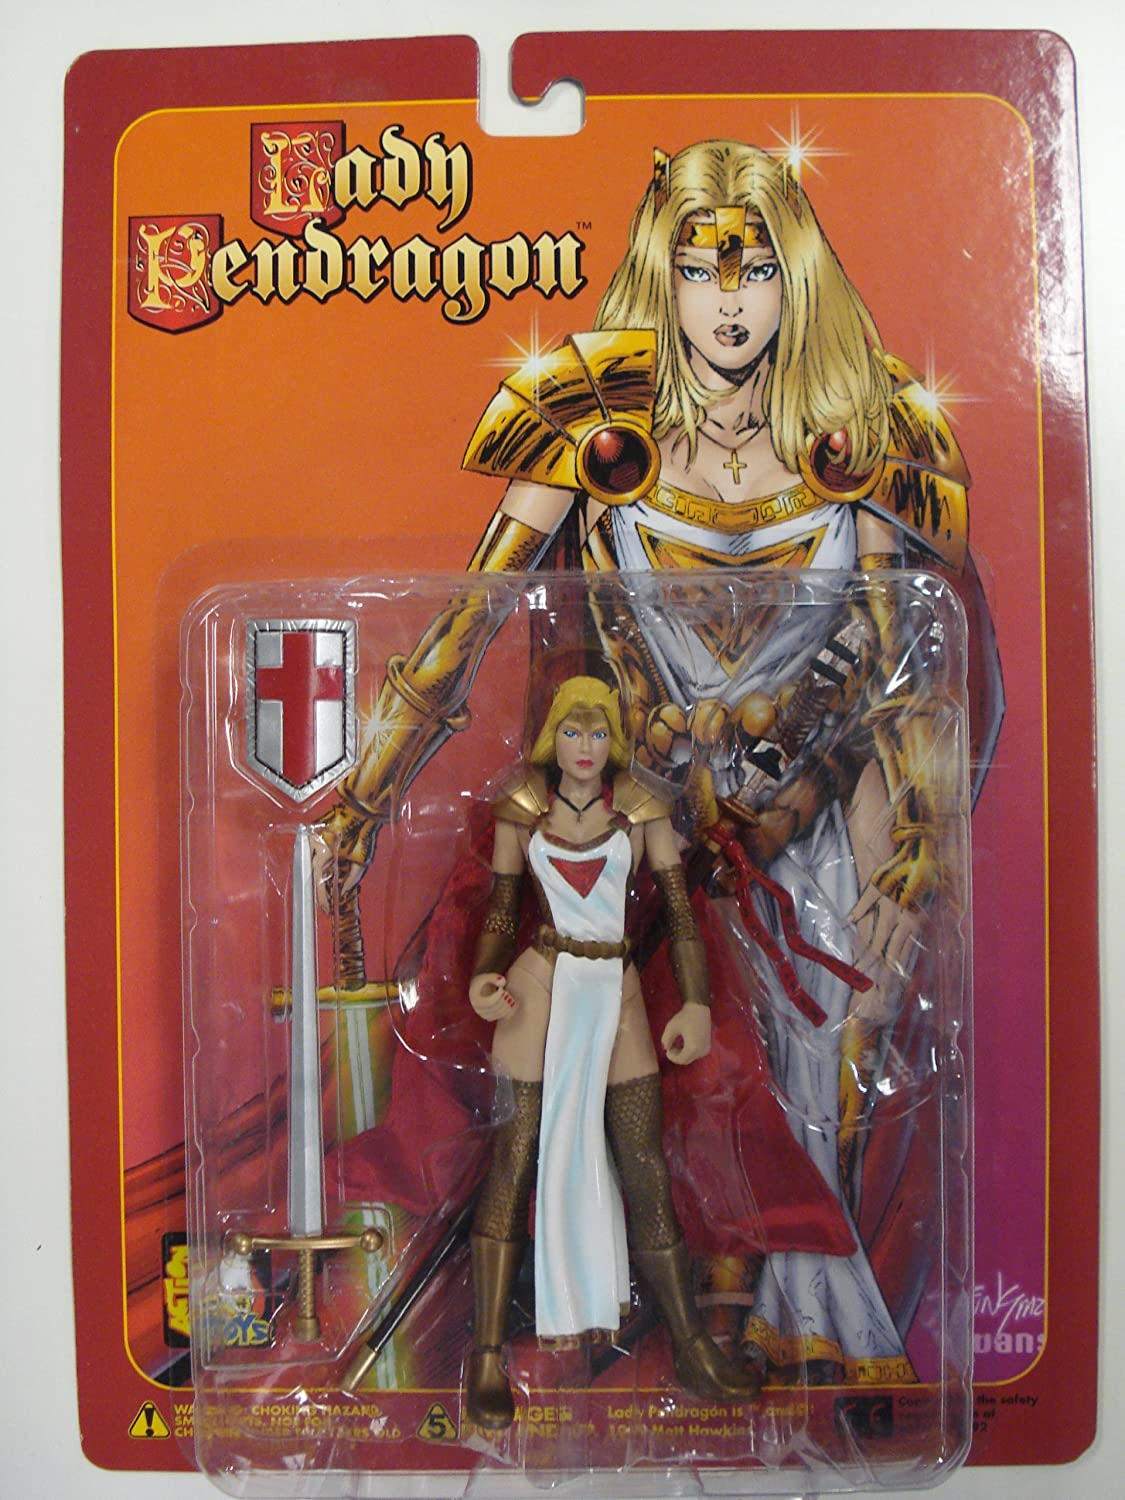 Lady Pendragon PRIESTESS, Variant or or or Regular Edition, 6 1/2 Poseable Action Figure with Sword, Spear and Shield by Lady Pendragon c24e4a